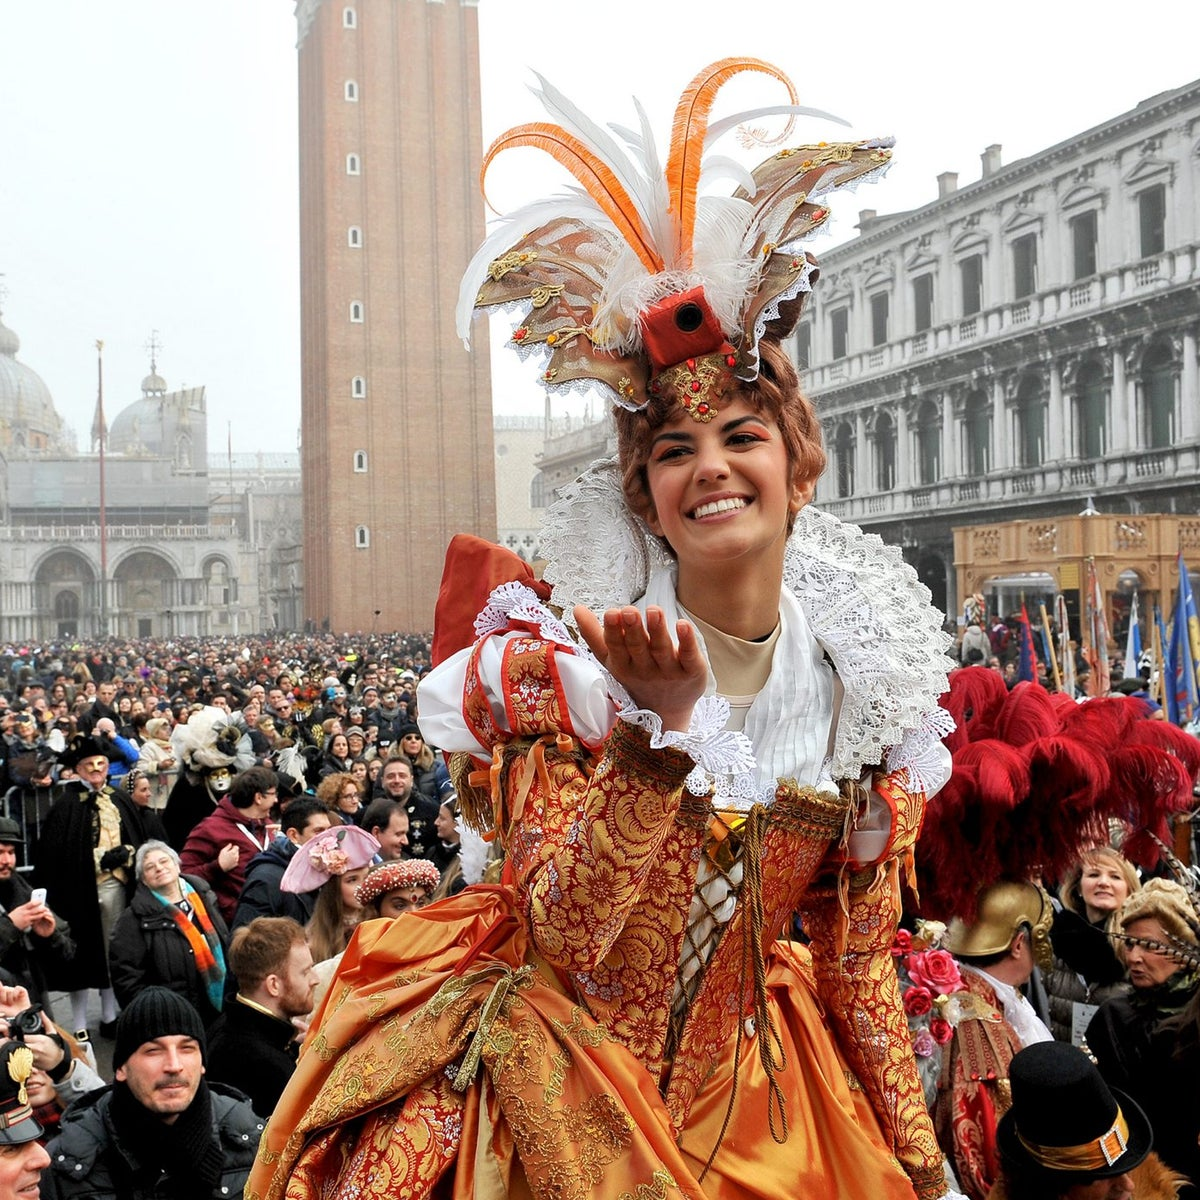 A costumed reveler in St. Mark's Square blows a kiss during Venice's Carnival celebrations. Celebration of the 500th anniversary of its Jewish ghetto begins on March 29, 2016, and will feature a host of cultural events.